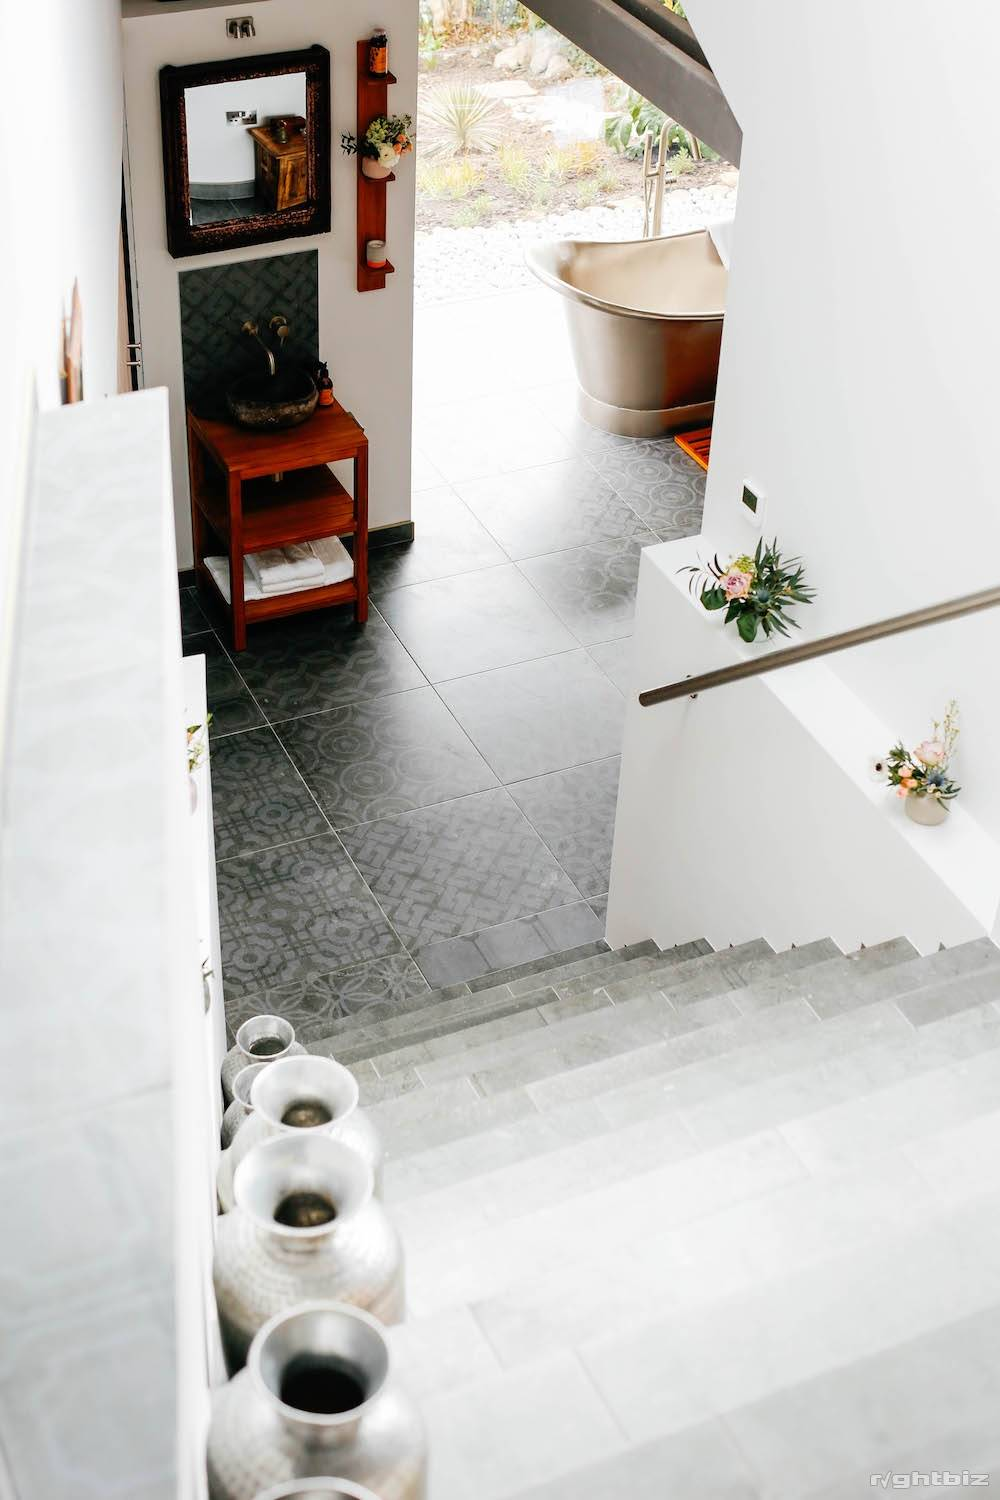 Respected Tile Business, established 2009 with new website and a huge variety of Spanish tiles - Image 13